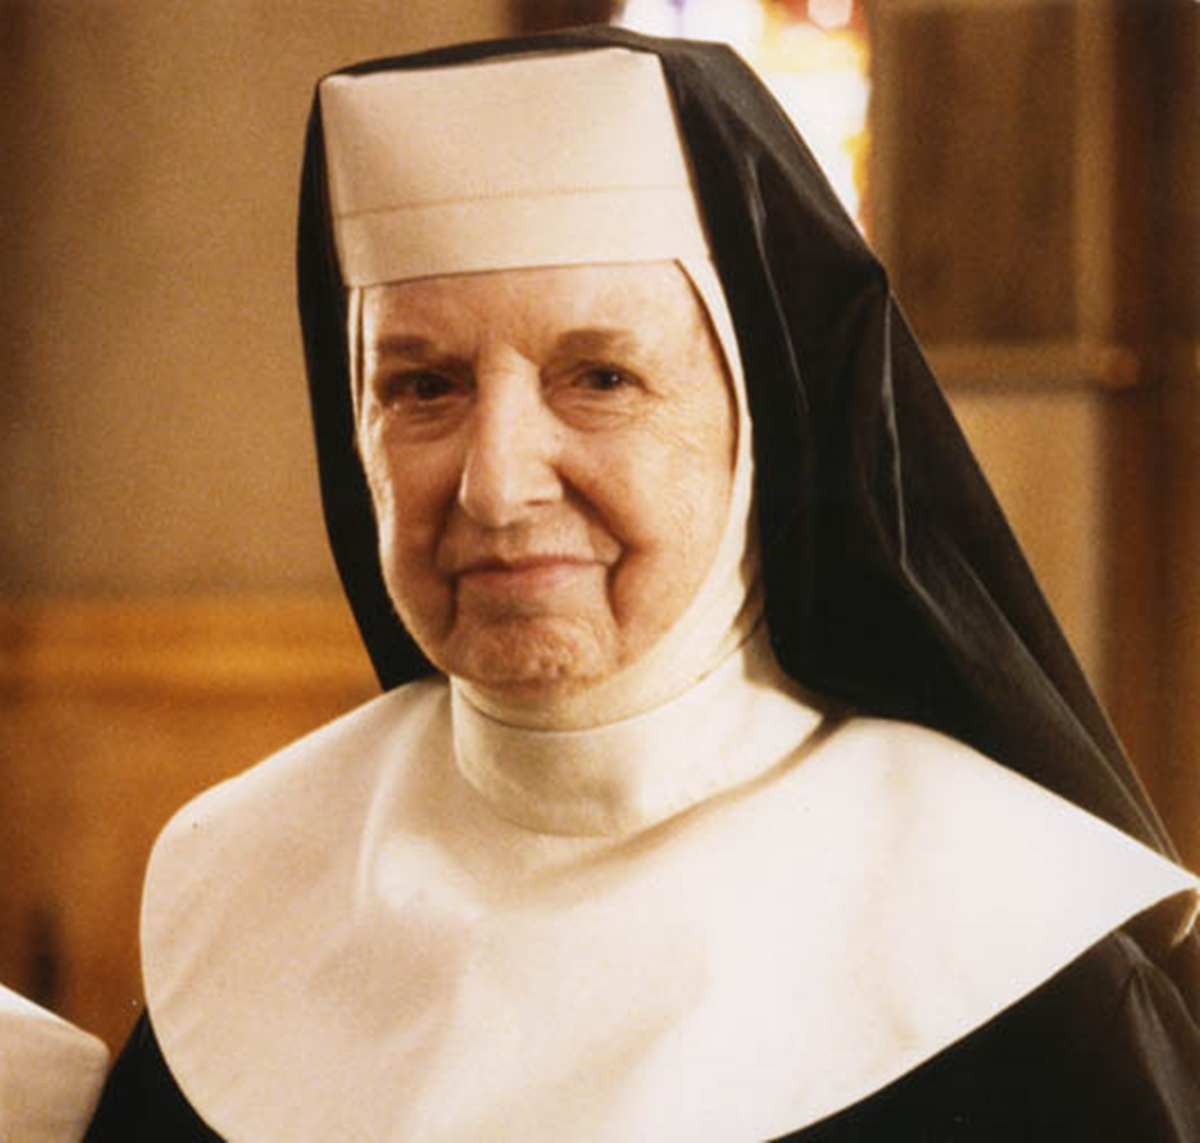 14 2 Remember Sister Act? Here's What The Cast Look Like Now!